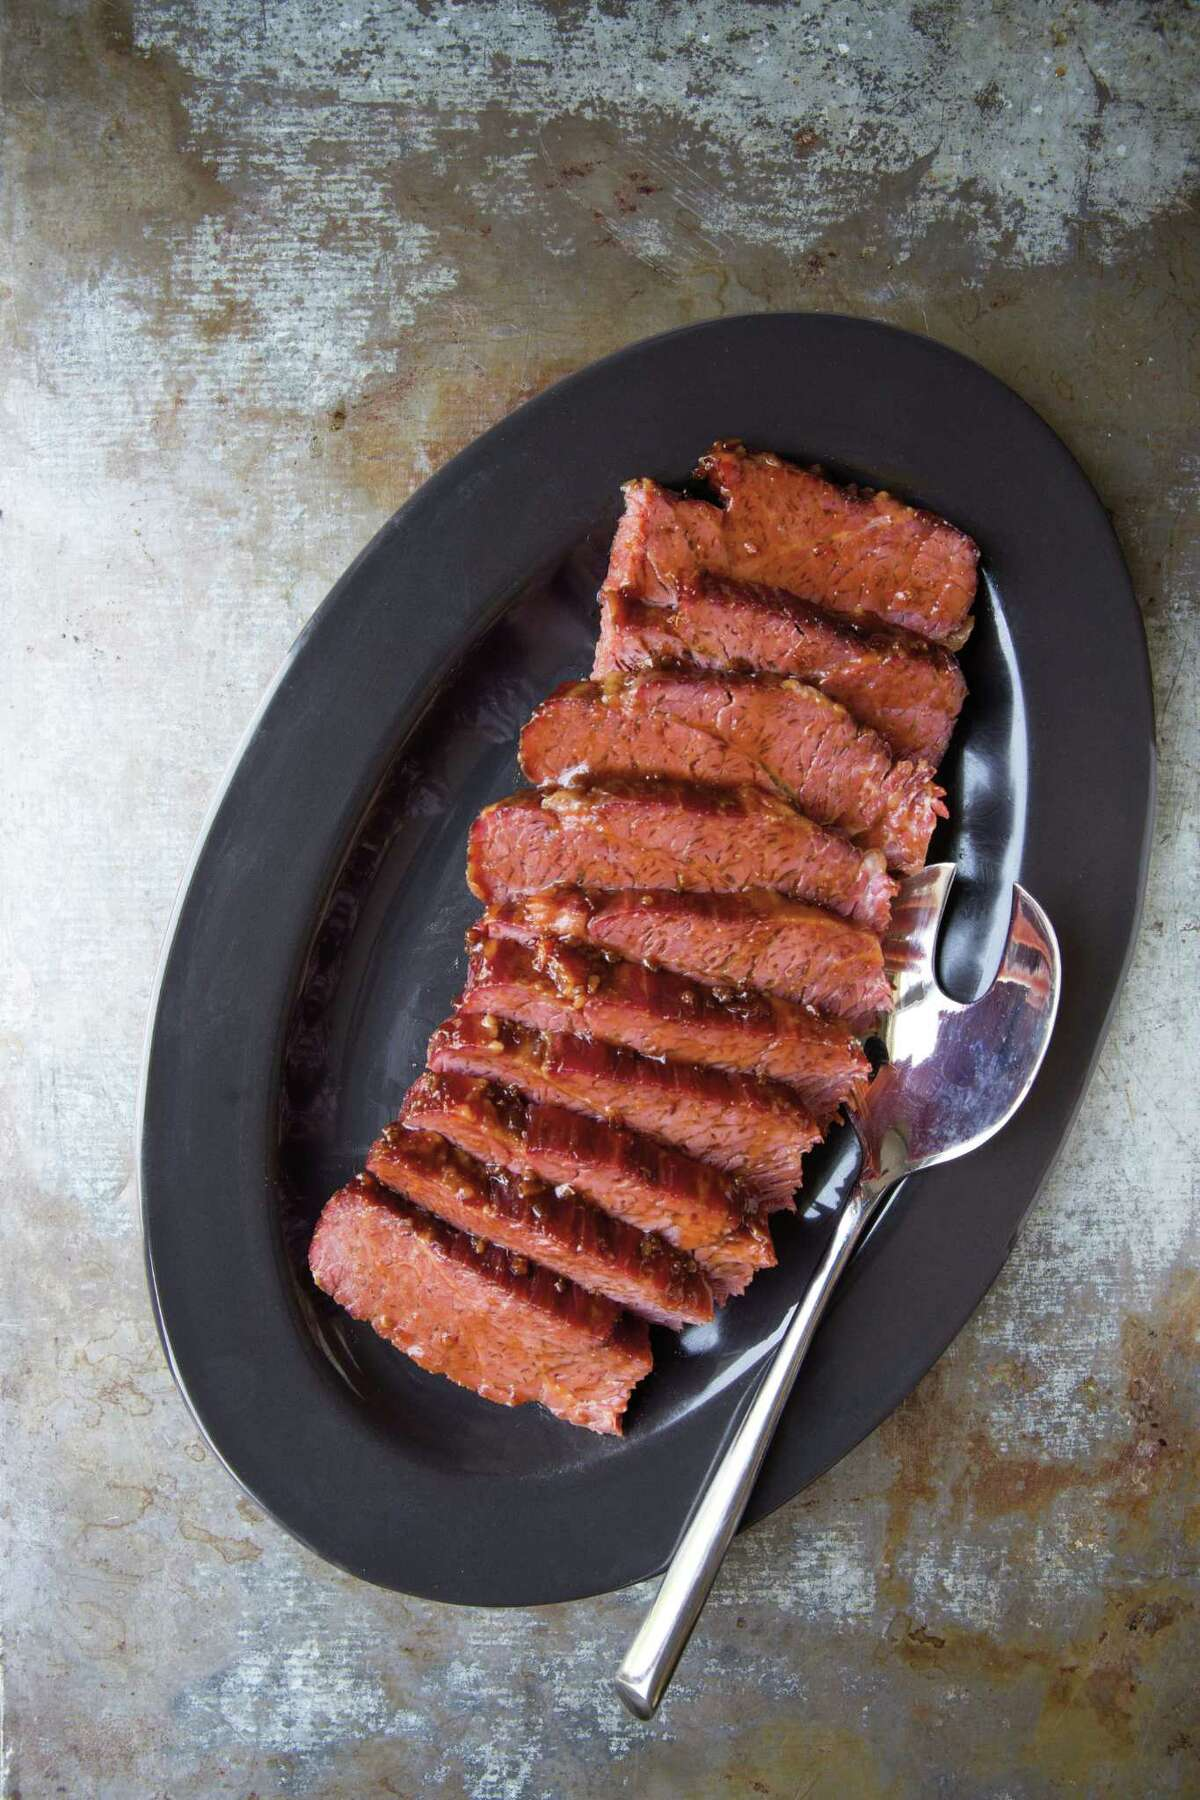 """Asian glazed corned beef features a 3 to 4 pound pickled brisket that is glazed with a combination teriyaki, sugar and honey glaze. The recipe is featured in author Miriam Pascal's book """"Real Life Kosher Cooking."""""""